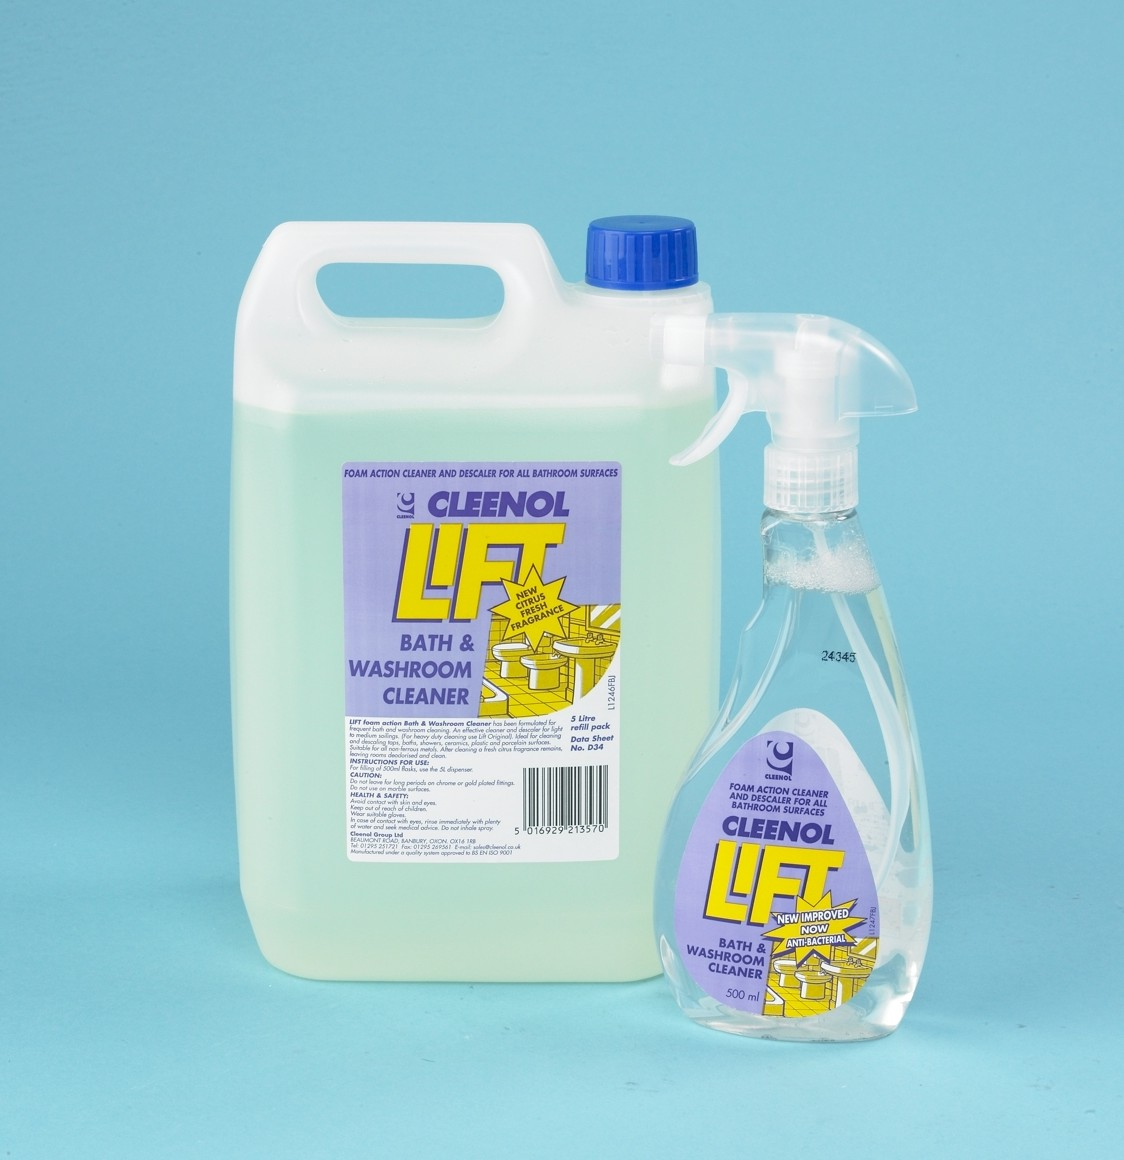 Lift Antibacterial Citrus Bath & Washroom Cleaner 6x750ml